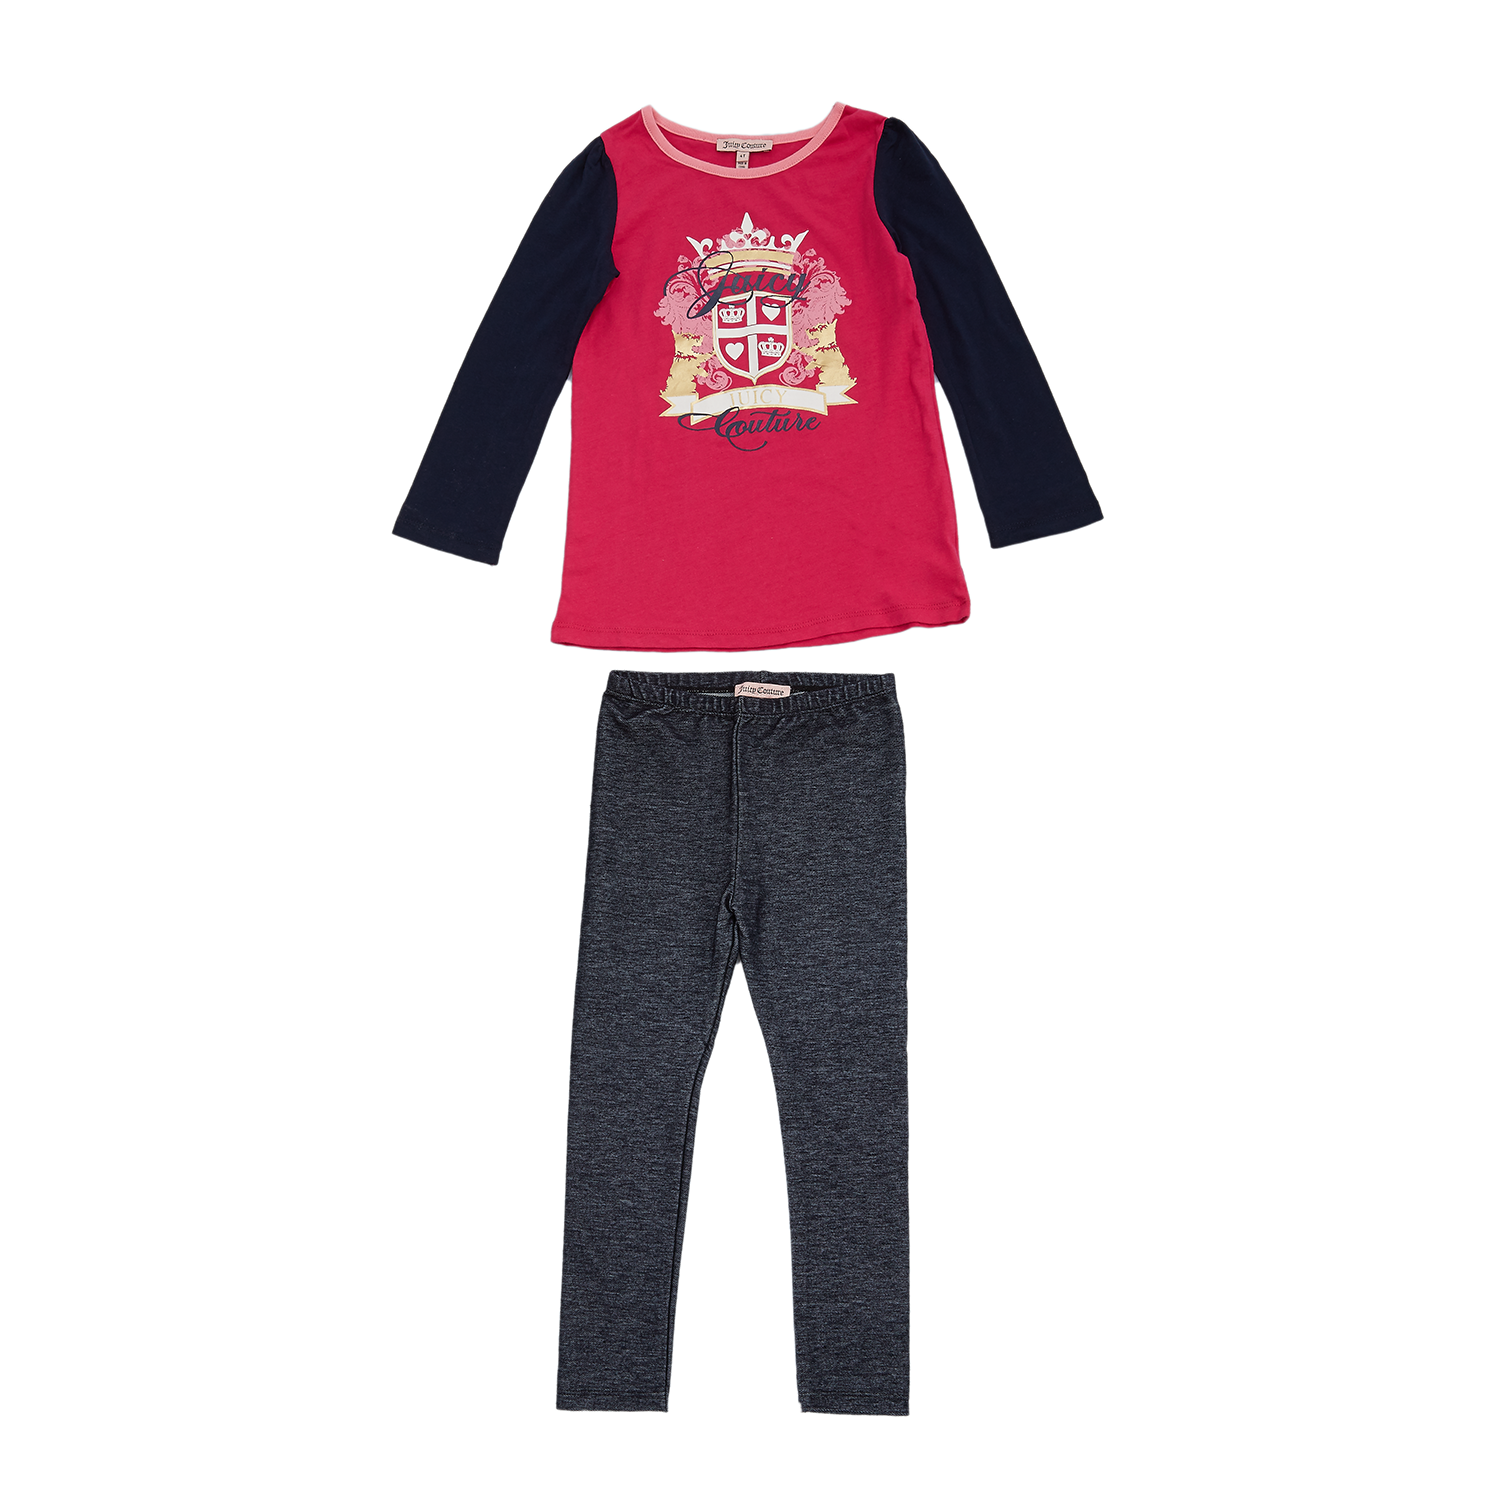 6d184f837bf JUICY COUTURE KIDS - Βρεφικό σετ Juicy Couture φούξια-μαύρο